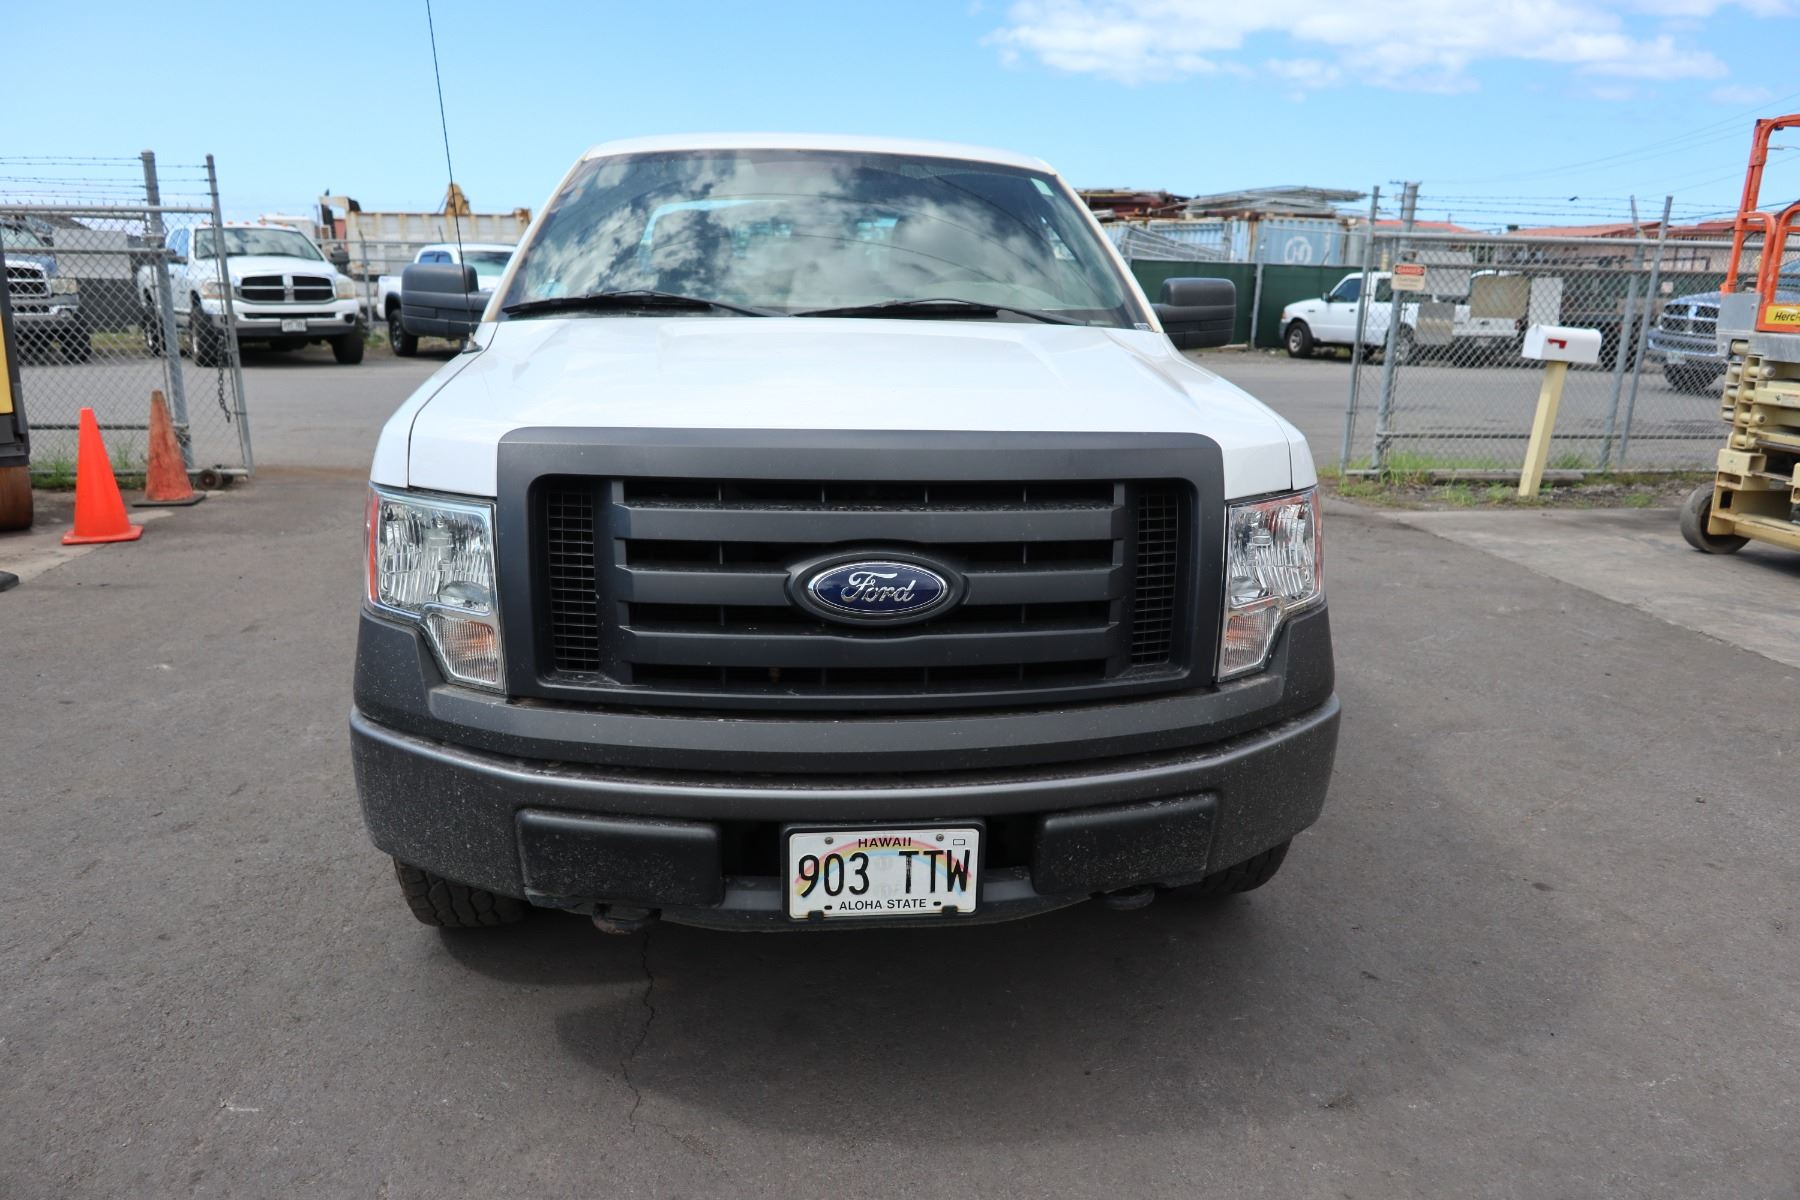 hight resolution of  image 2 2012 ford f 150 truck 4x4 crew cab 69 332 miles 903